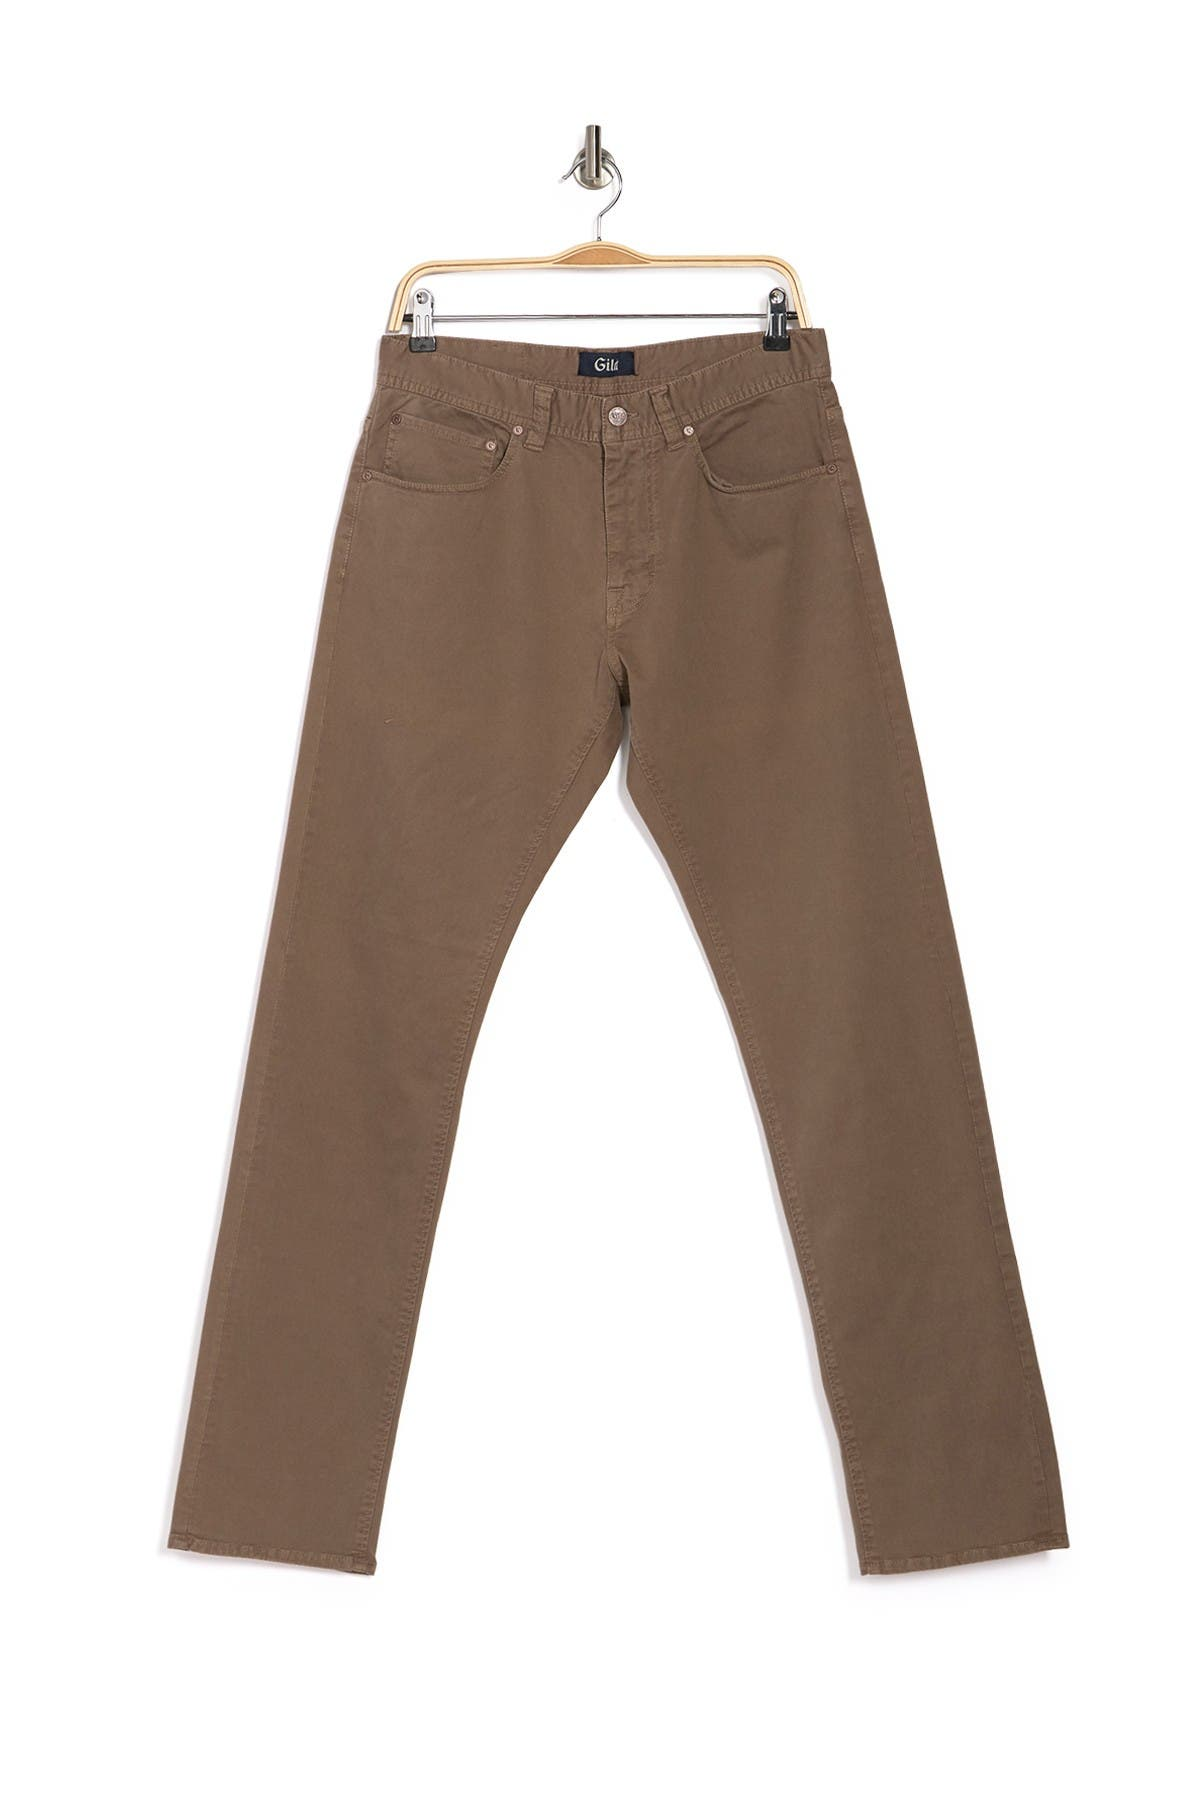 Image of Gilded Age Brushed Twill Jean